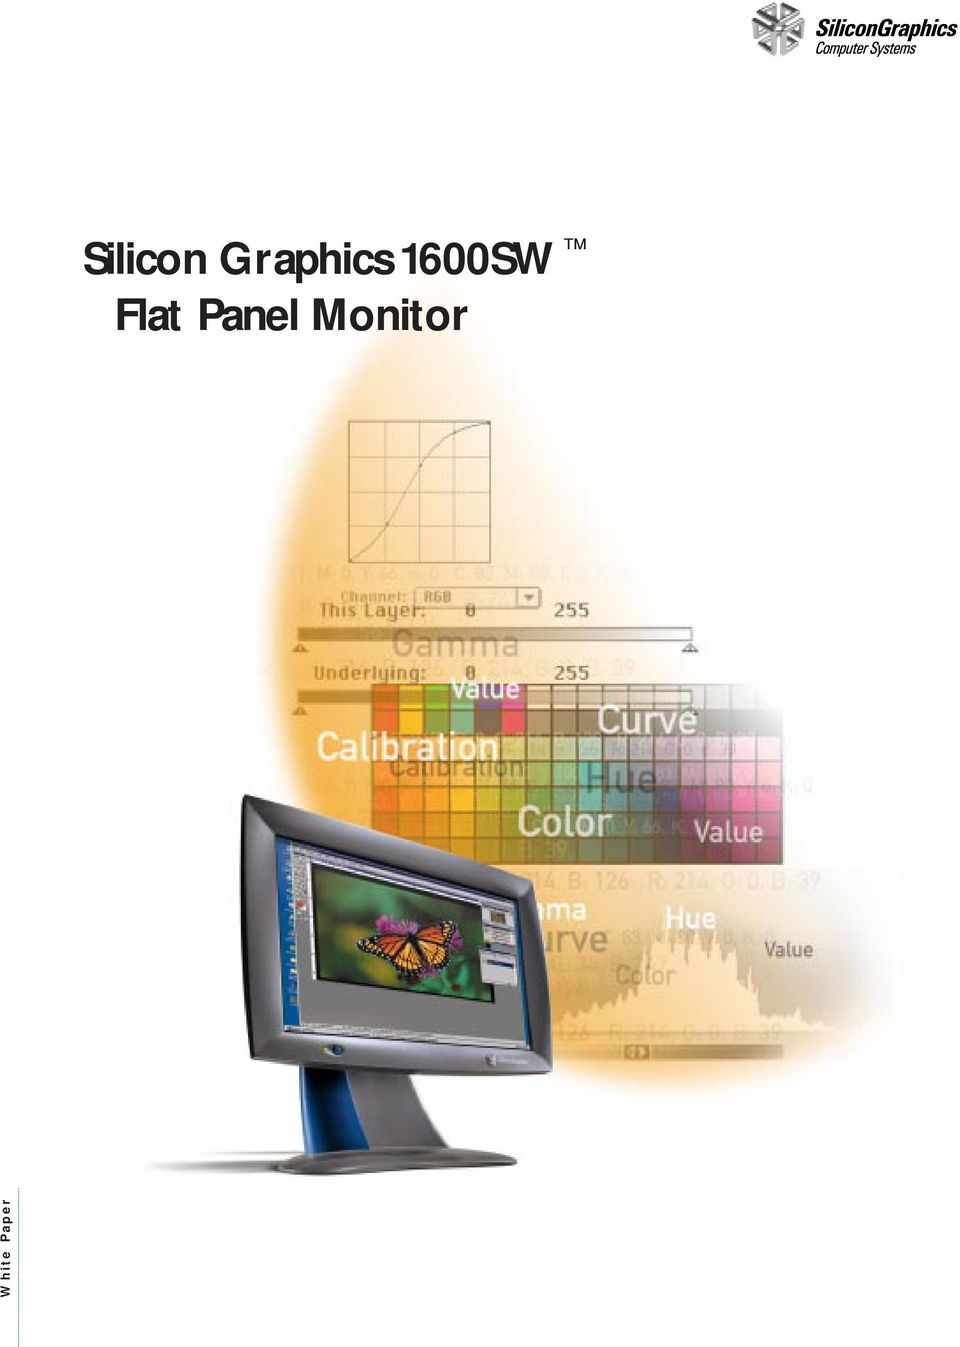 White Paper Silicon Graphics 1600sw Flat Panel Monitor Pdf Polarizer 17 Inch Polarized Lcd Screen Liquid Crystal Display Construction Chemistry Cell Substrates With Patterned Electrodes Molecular Alignment Layers